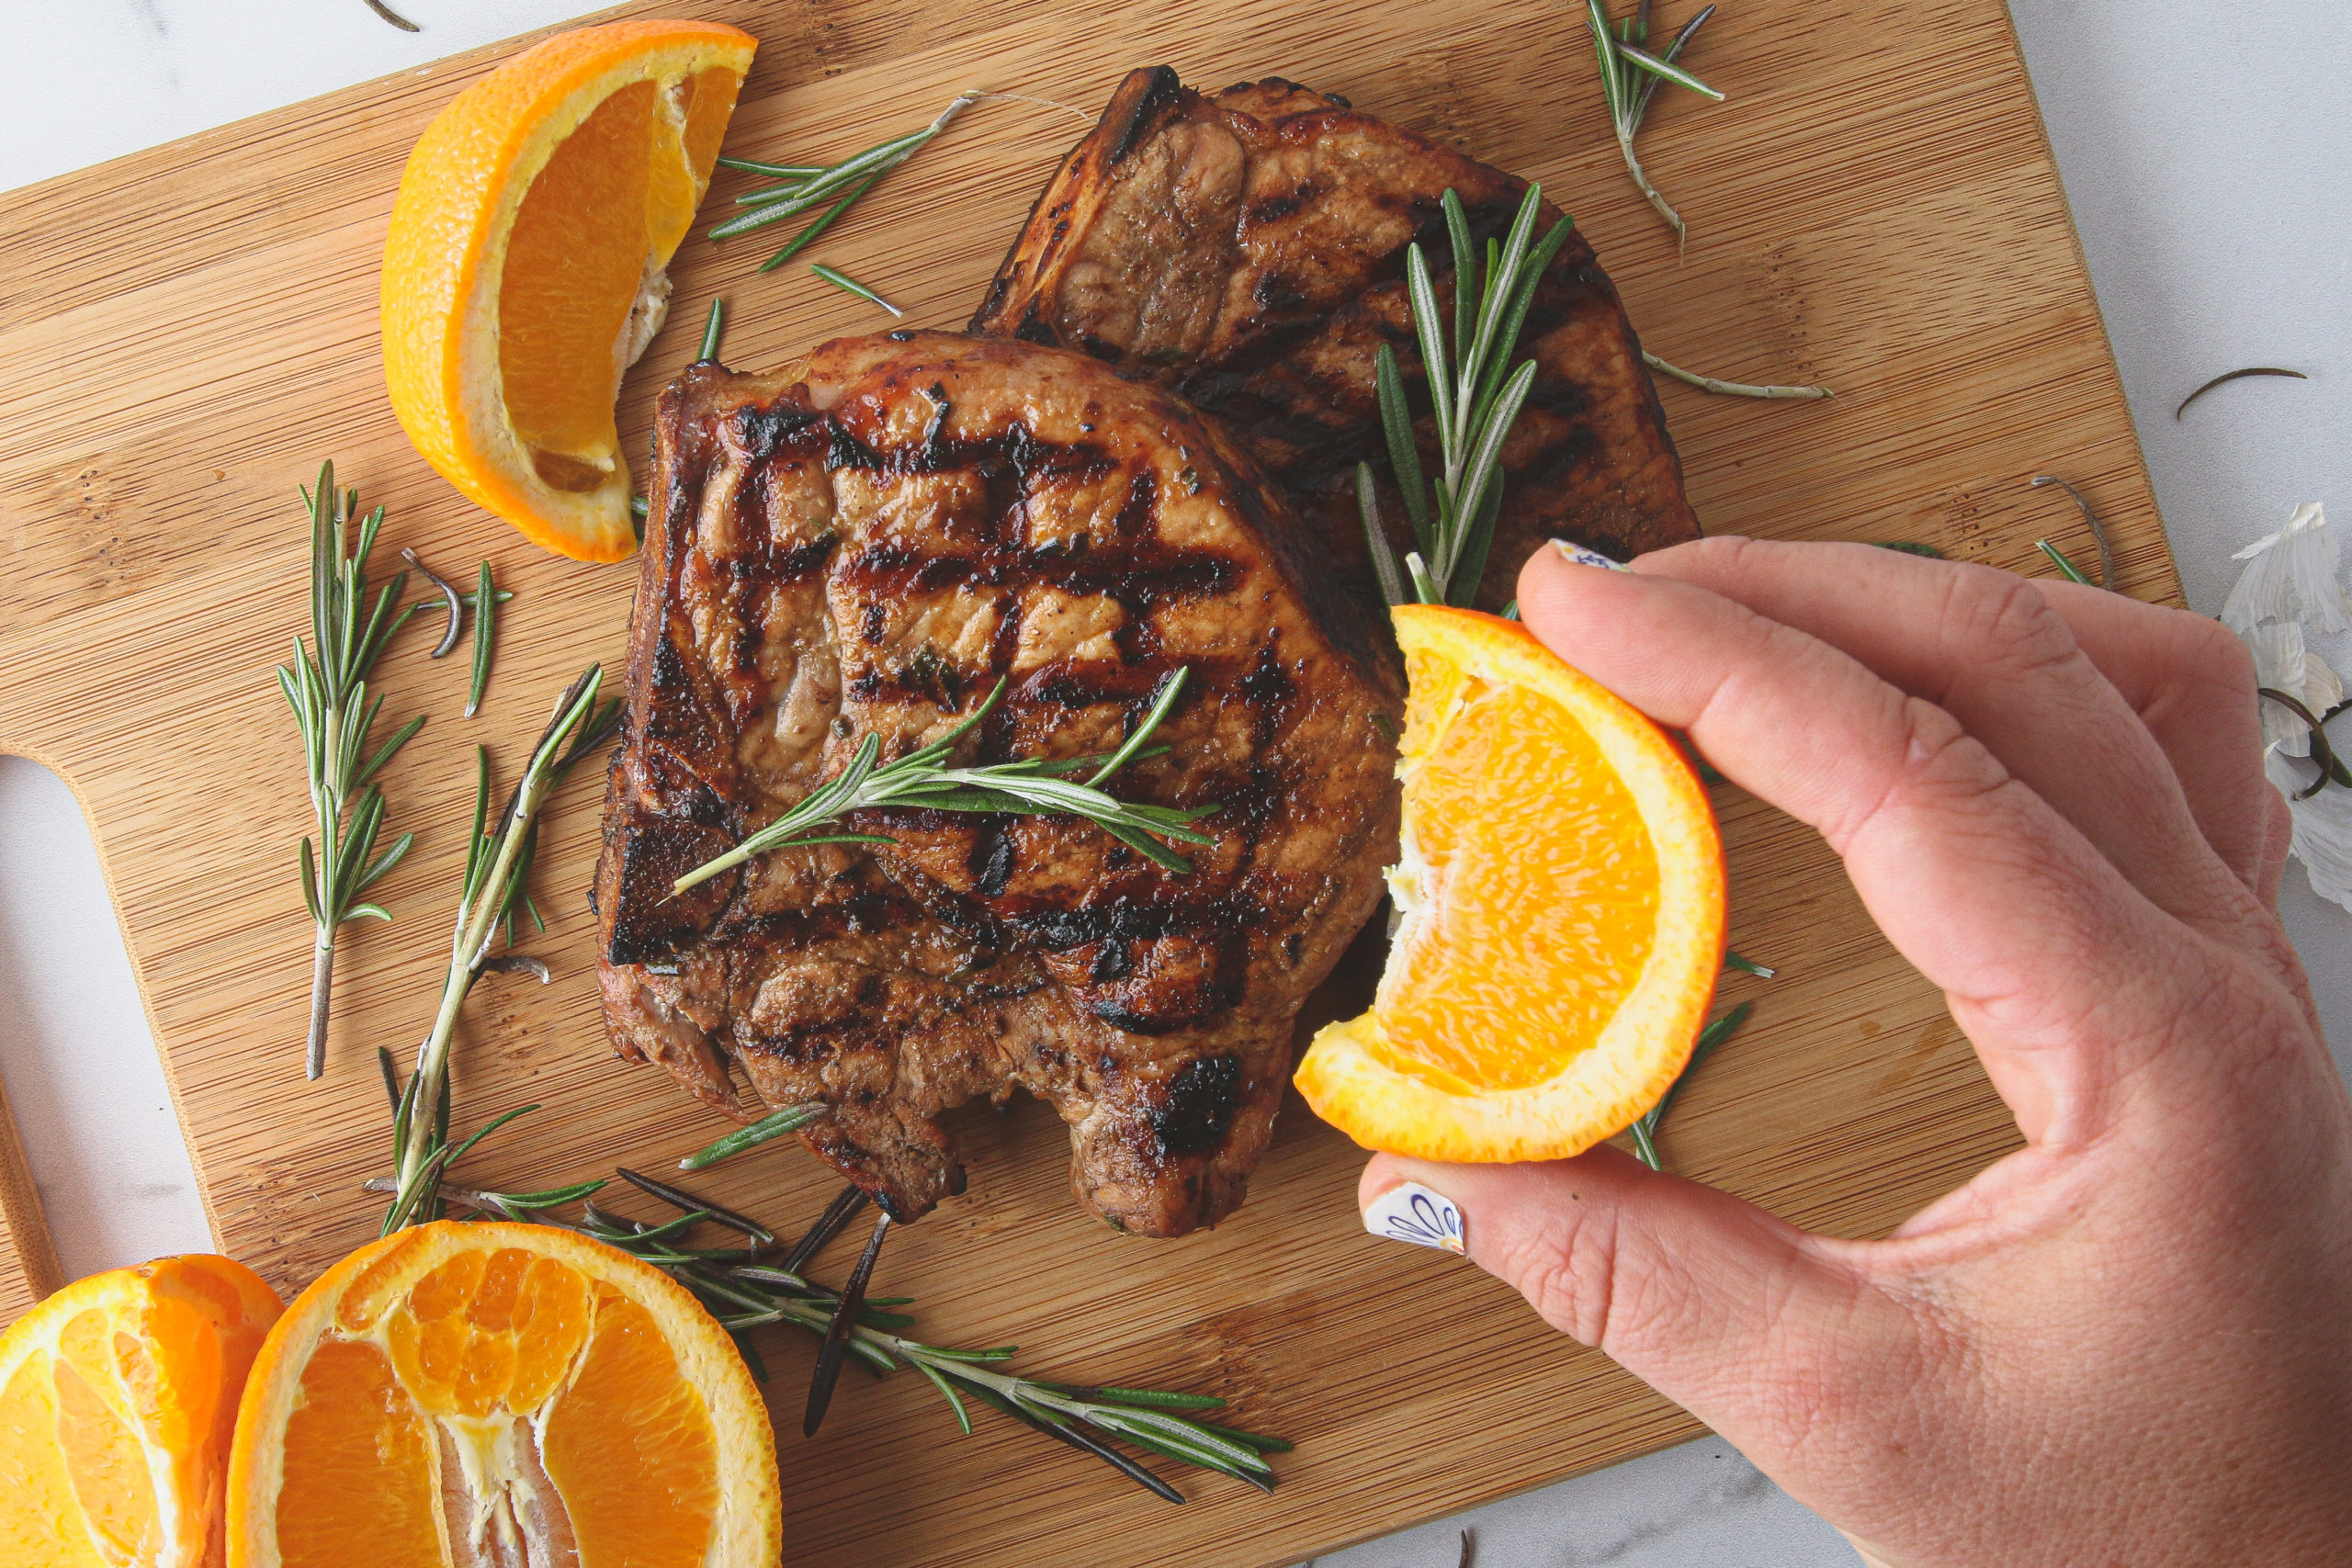 grilled pork chop with rosemary and orange